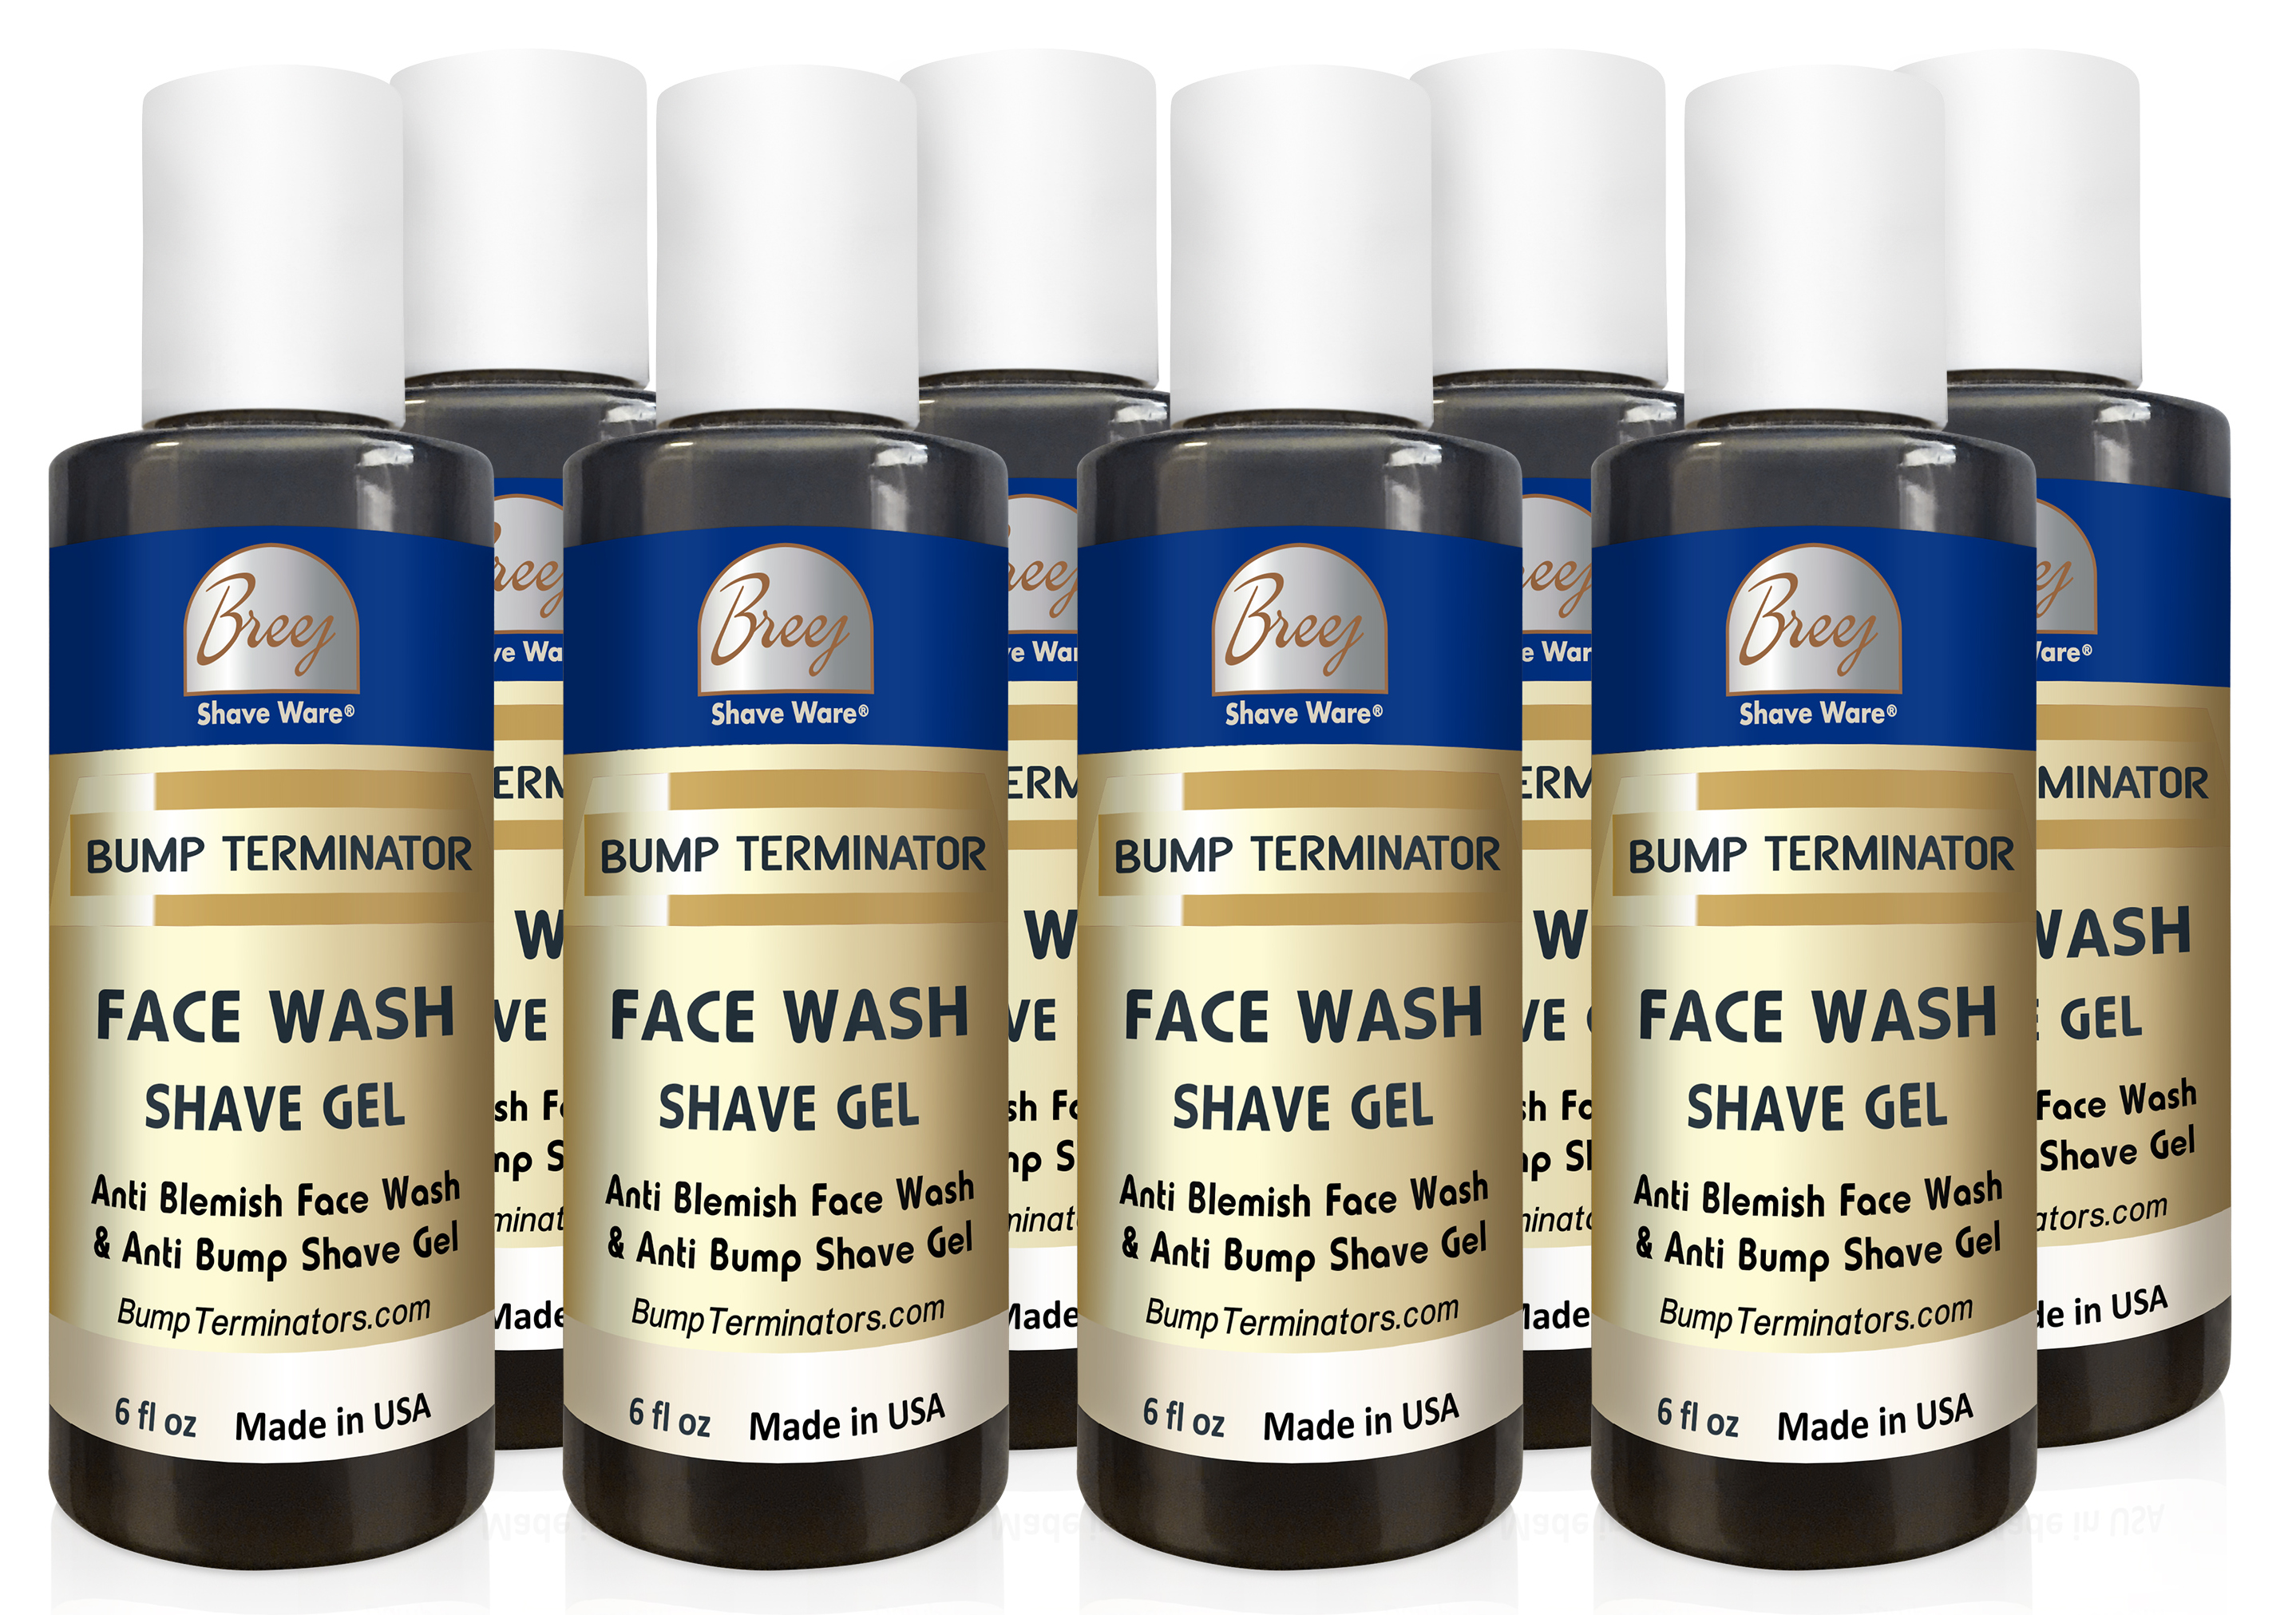 BUMP TERMINATOR Face Wash and Shave Gel